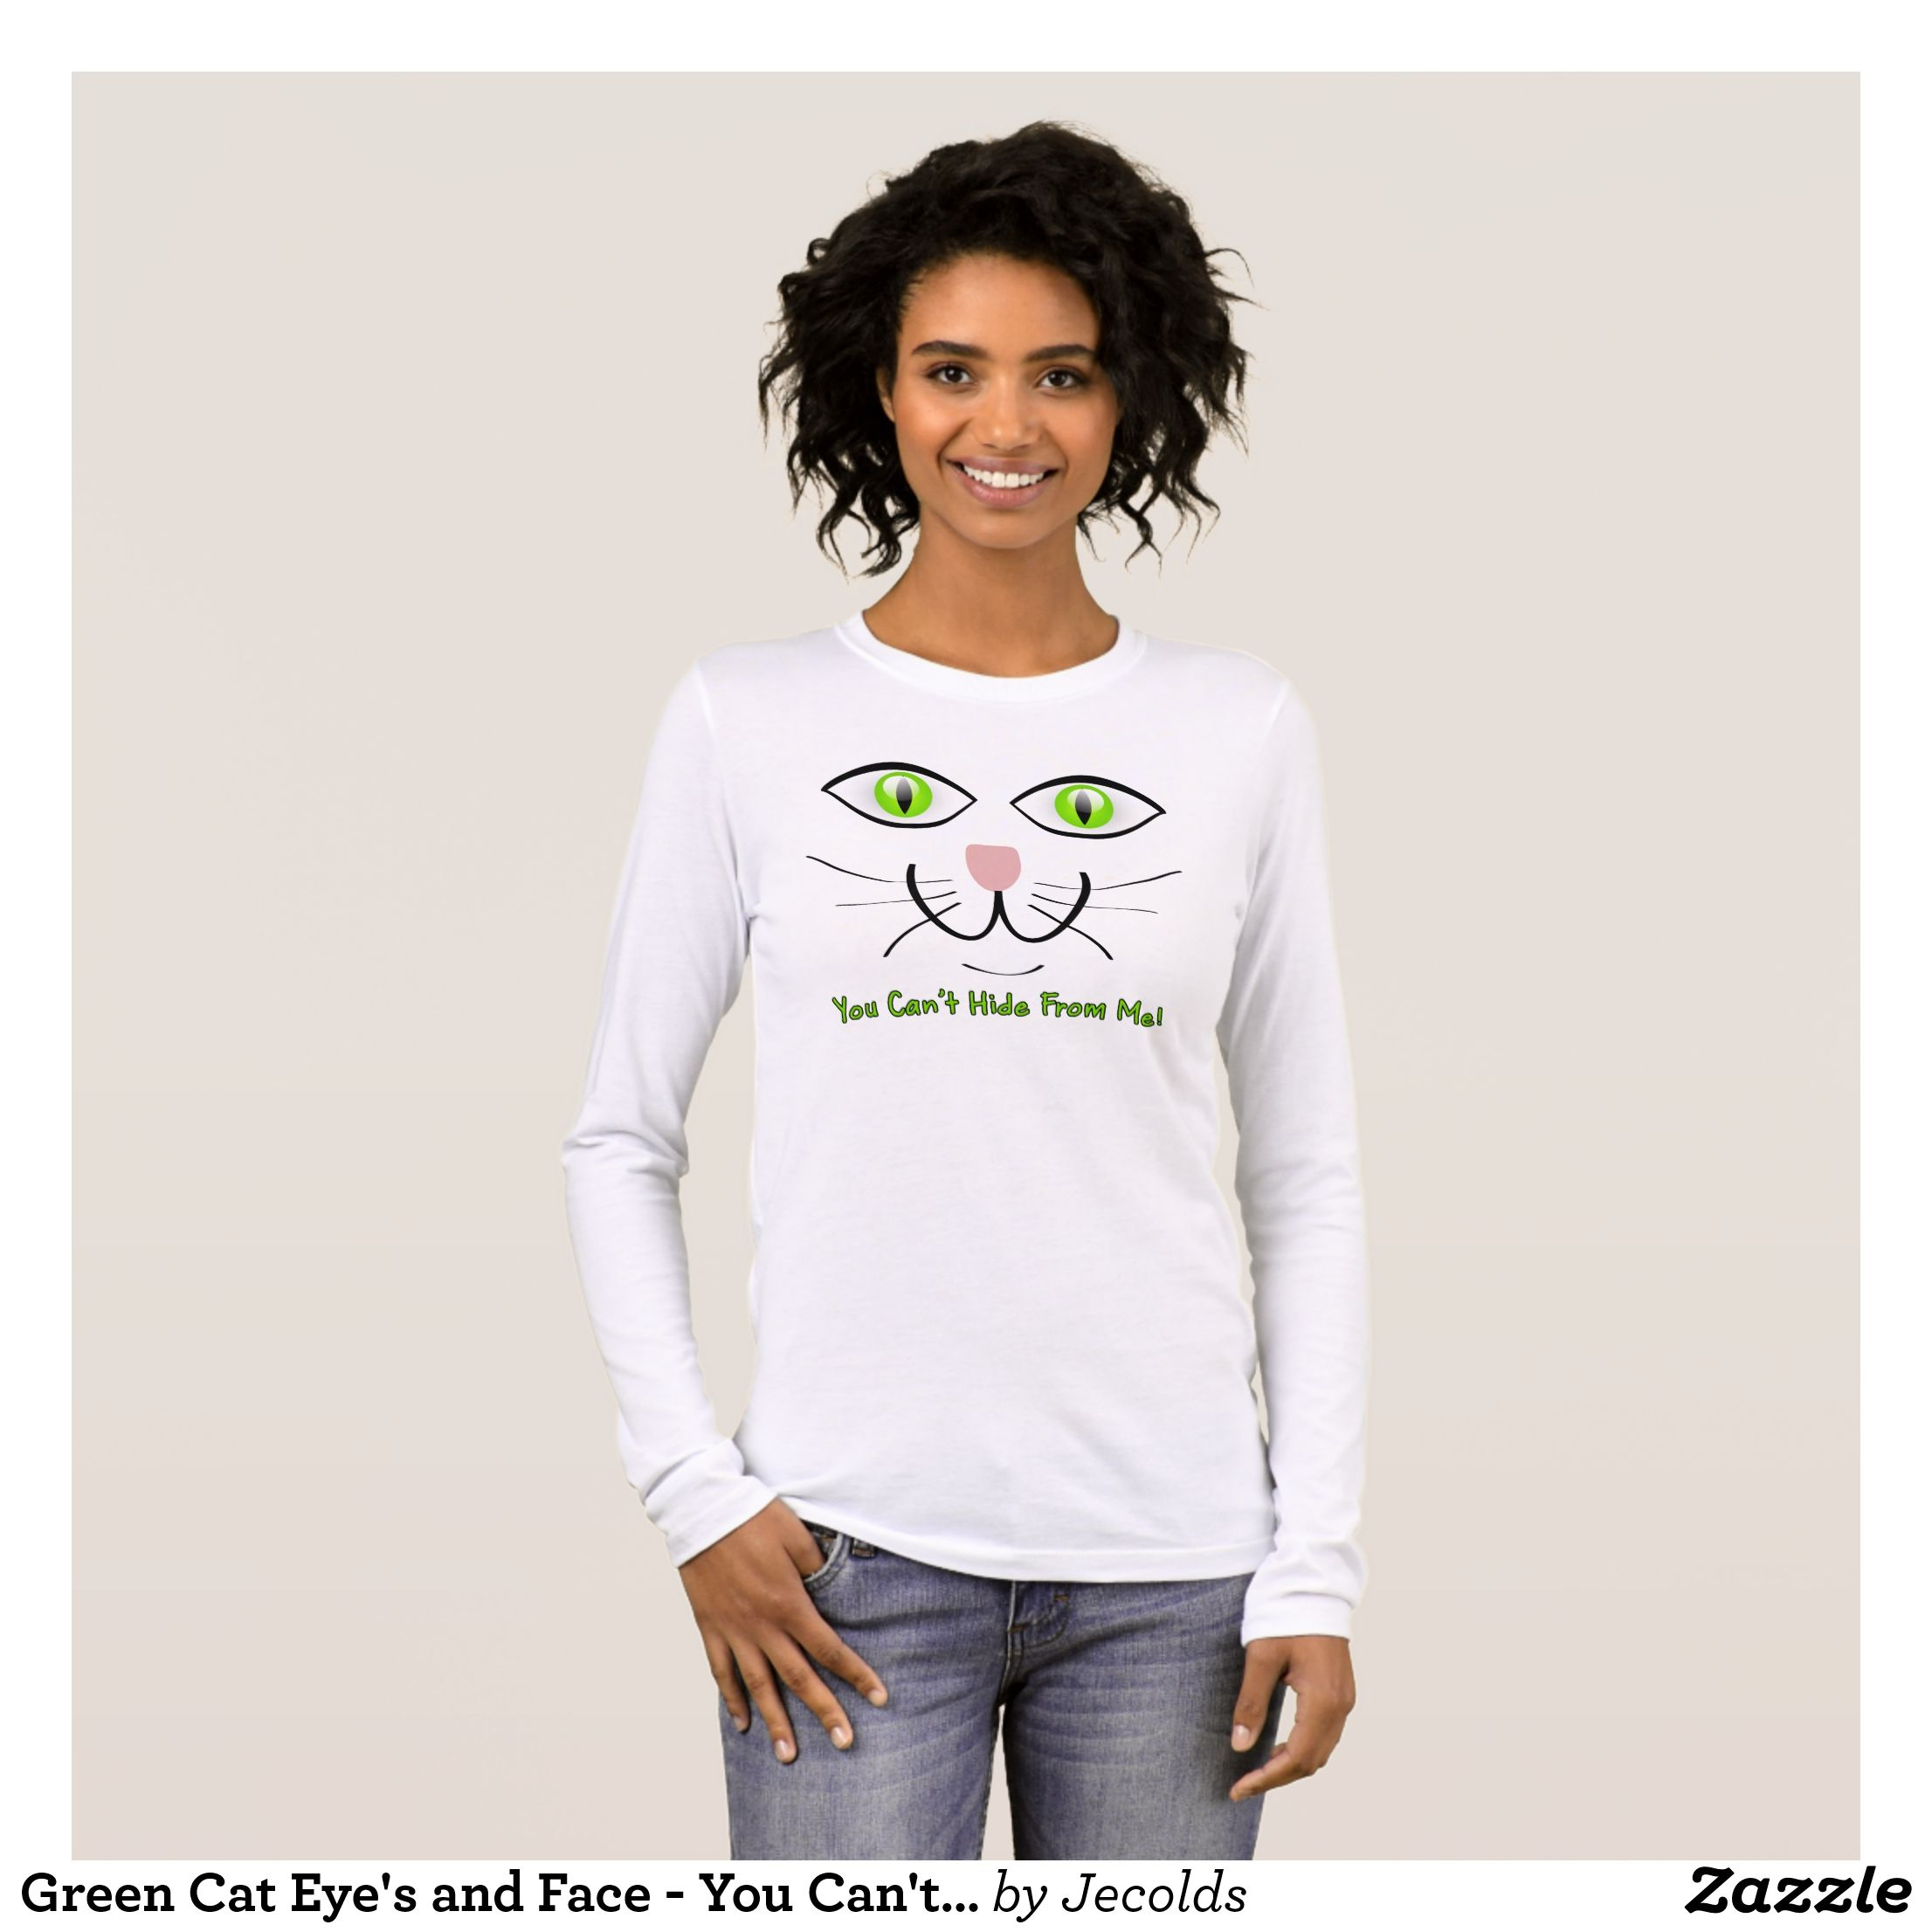 Green cat eyeus and face you canut hide from me long sleeve tshirt